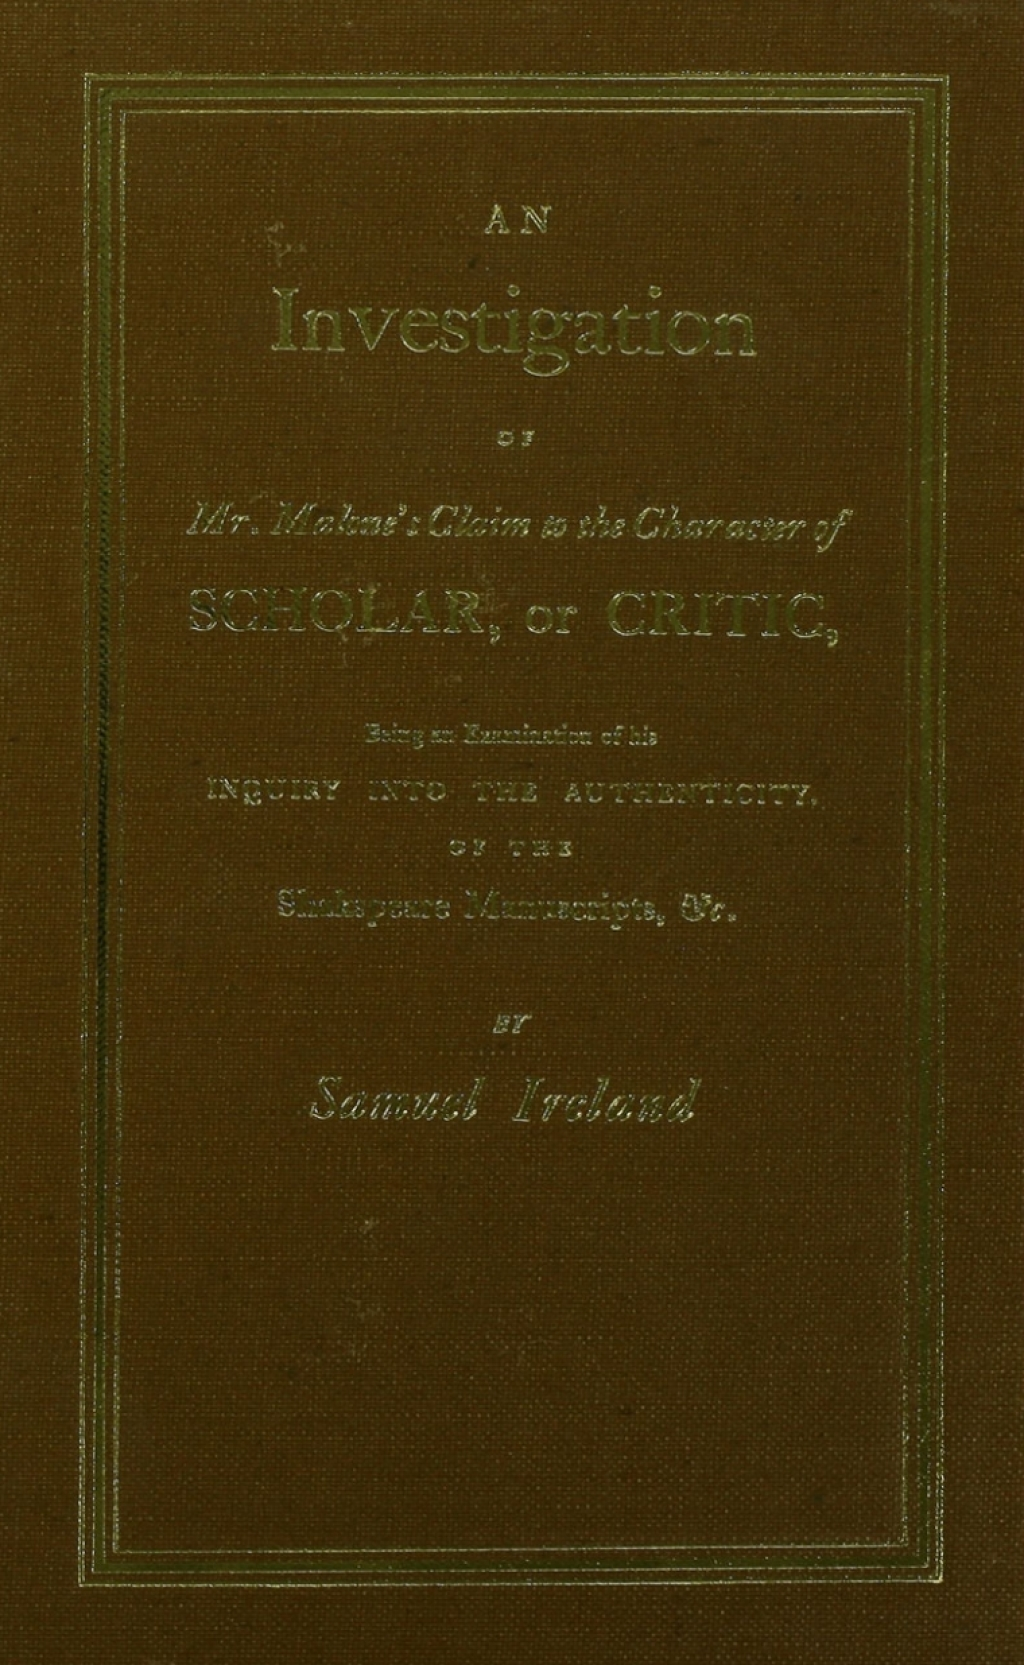 Investigation into Mr. Malone's Claim to Charter of Scholar (eBook Rental)